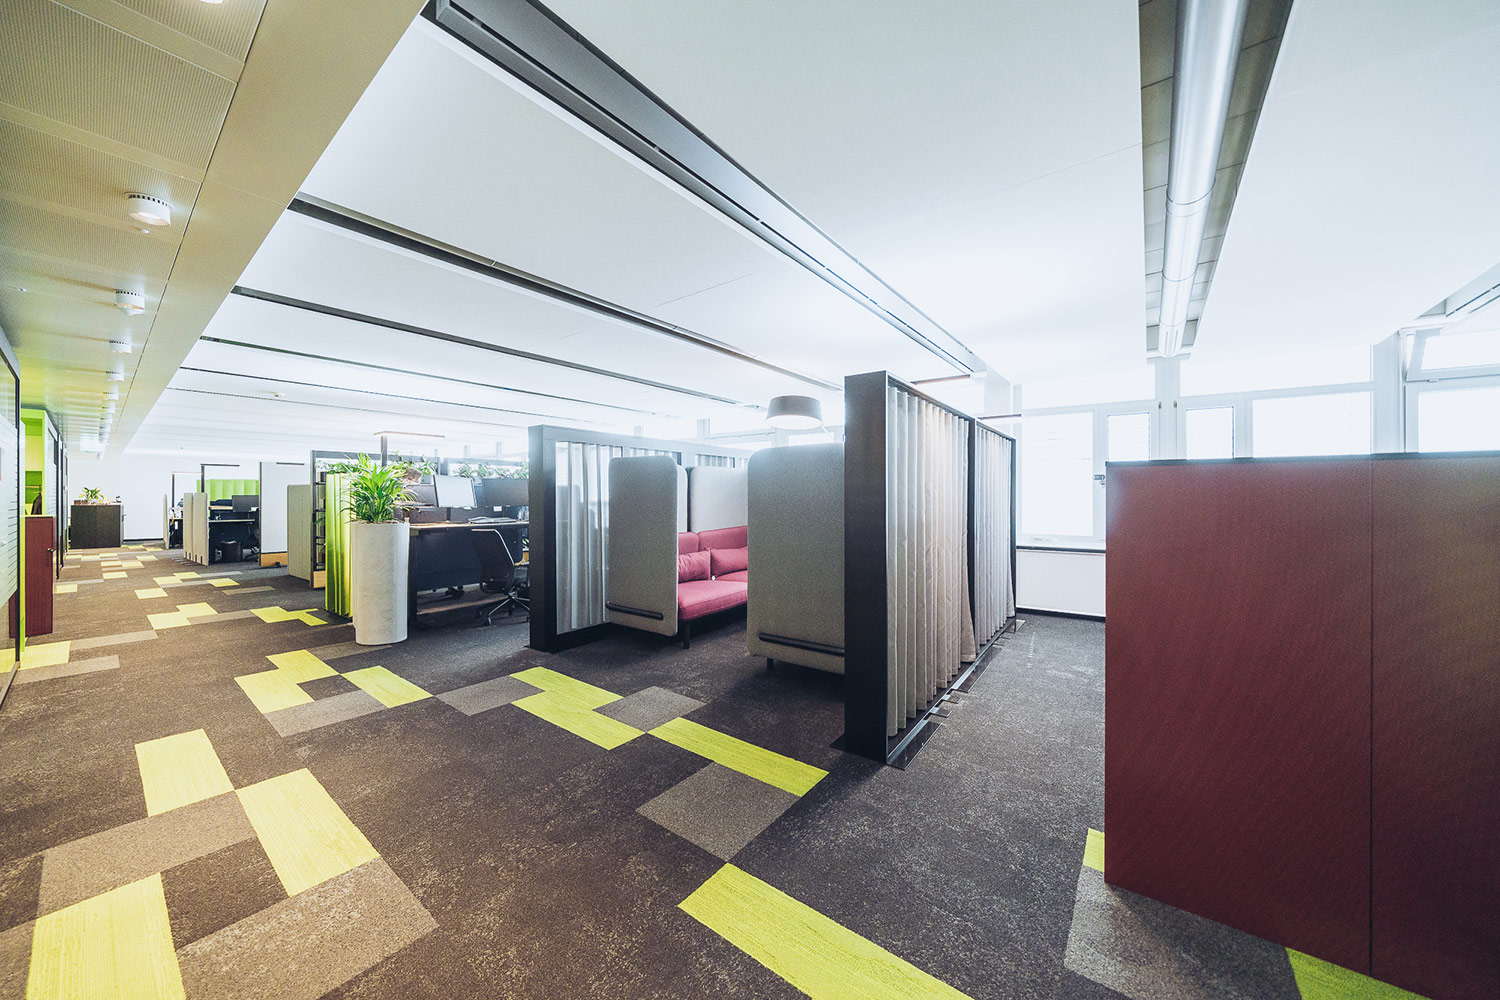 SWICA, one of Switzerland's leading healthcare and insurance organizations, retained WSDG to create an efficient and acoustically pleasant open space environment. Dividers.